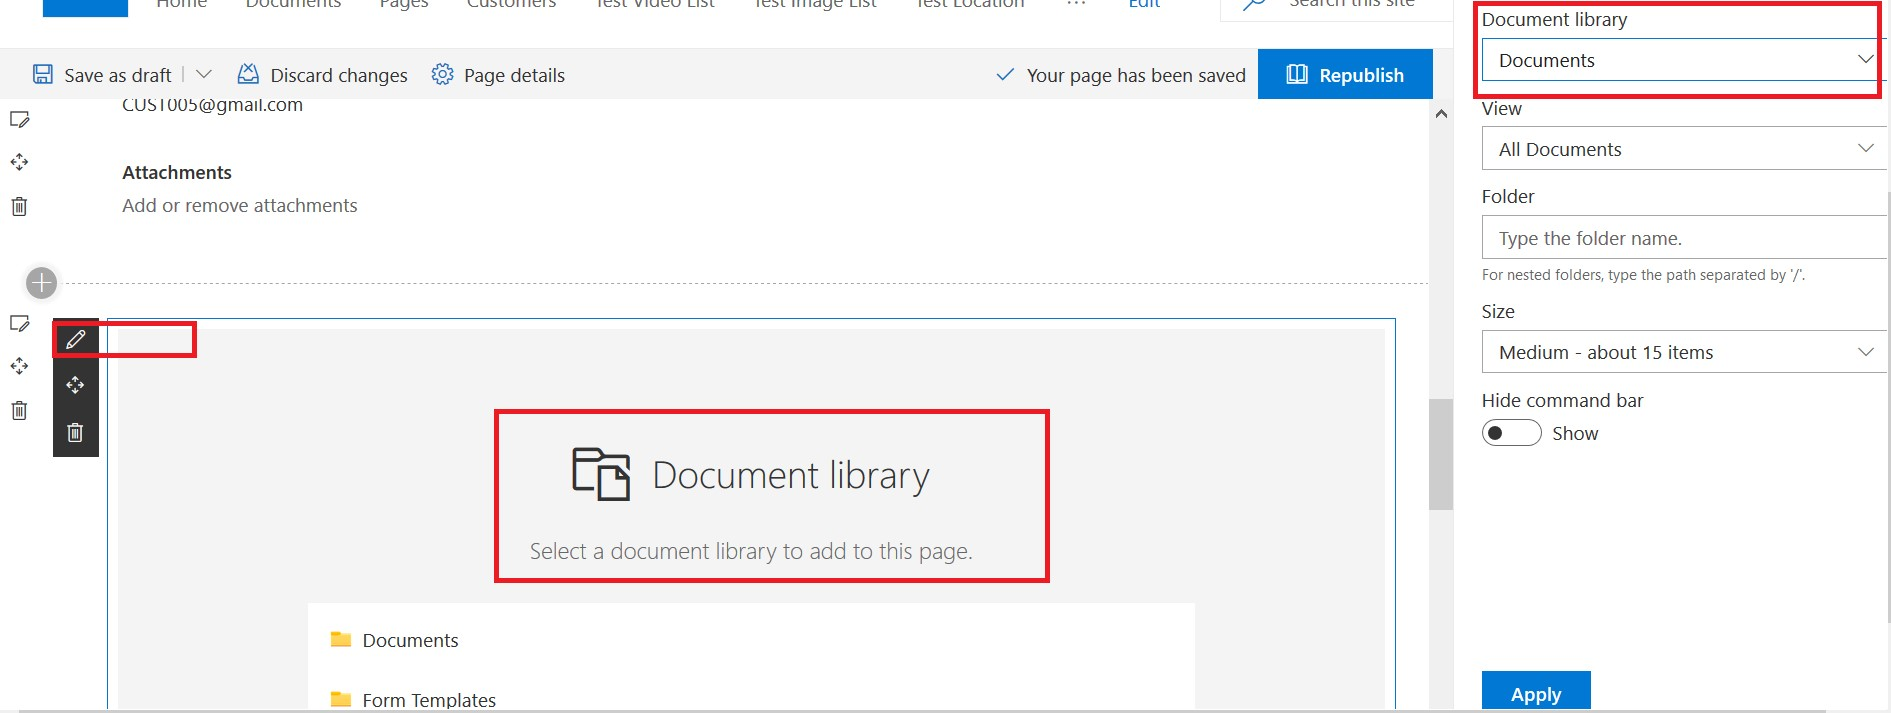 Connect a File viewer web part to a Document library web part(show selected file)